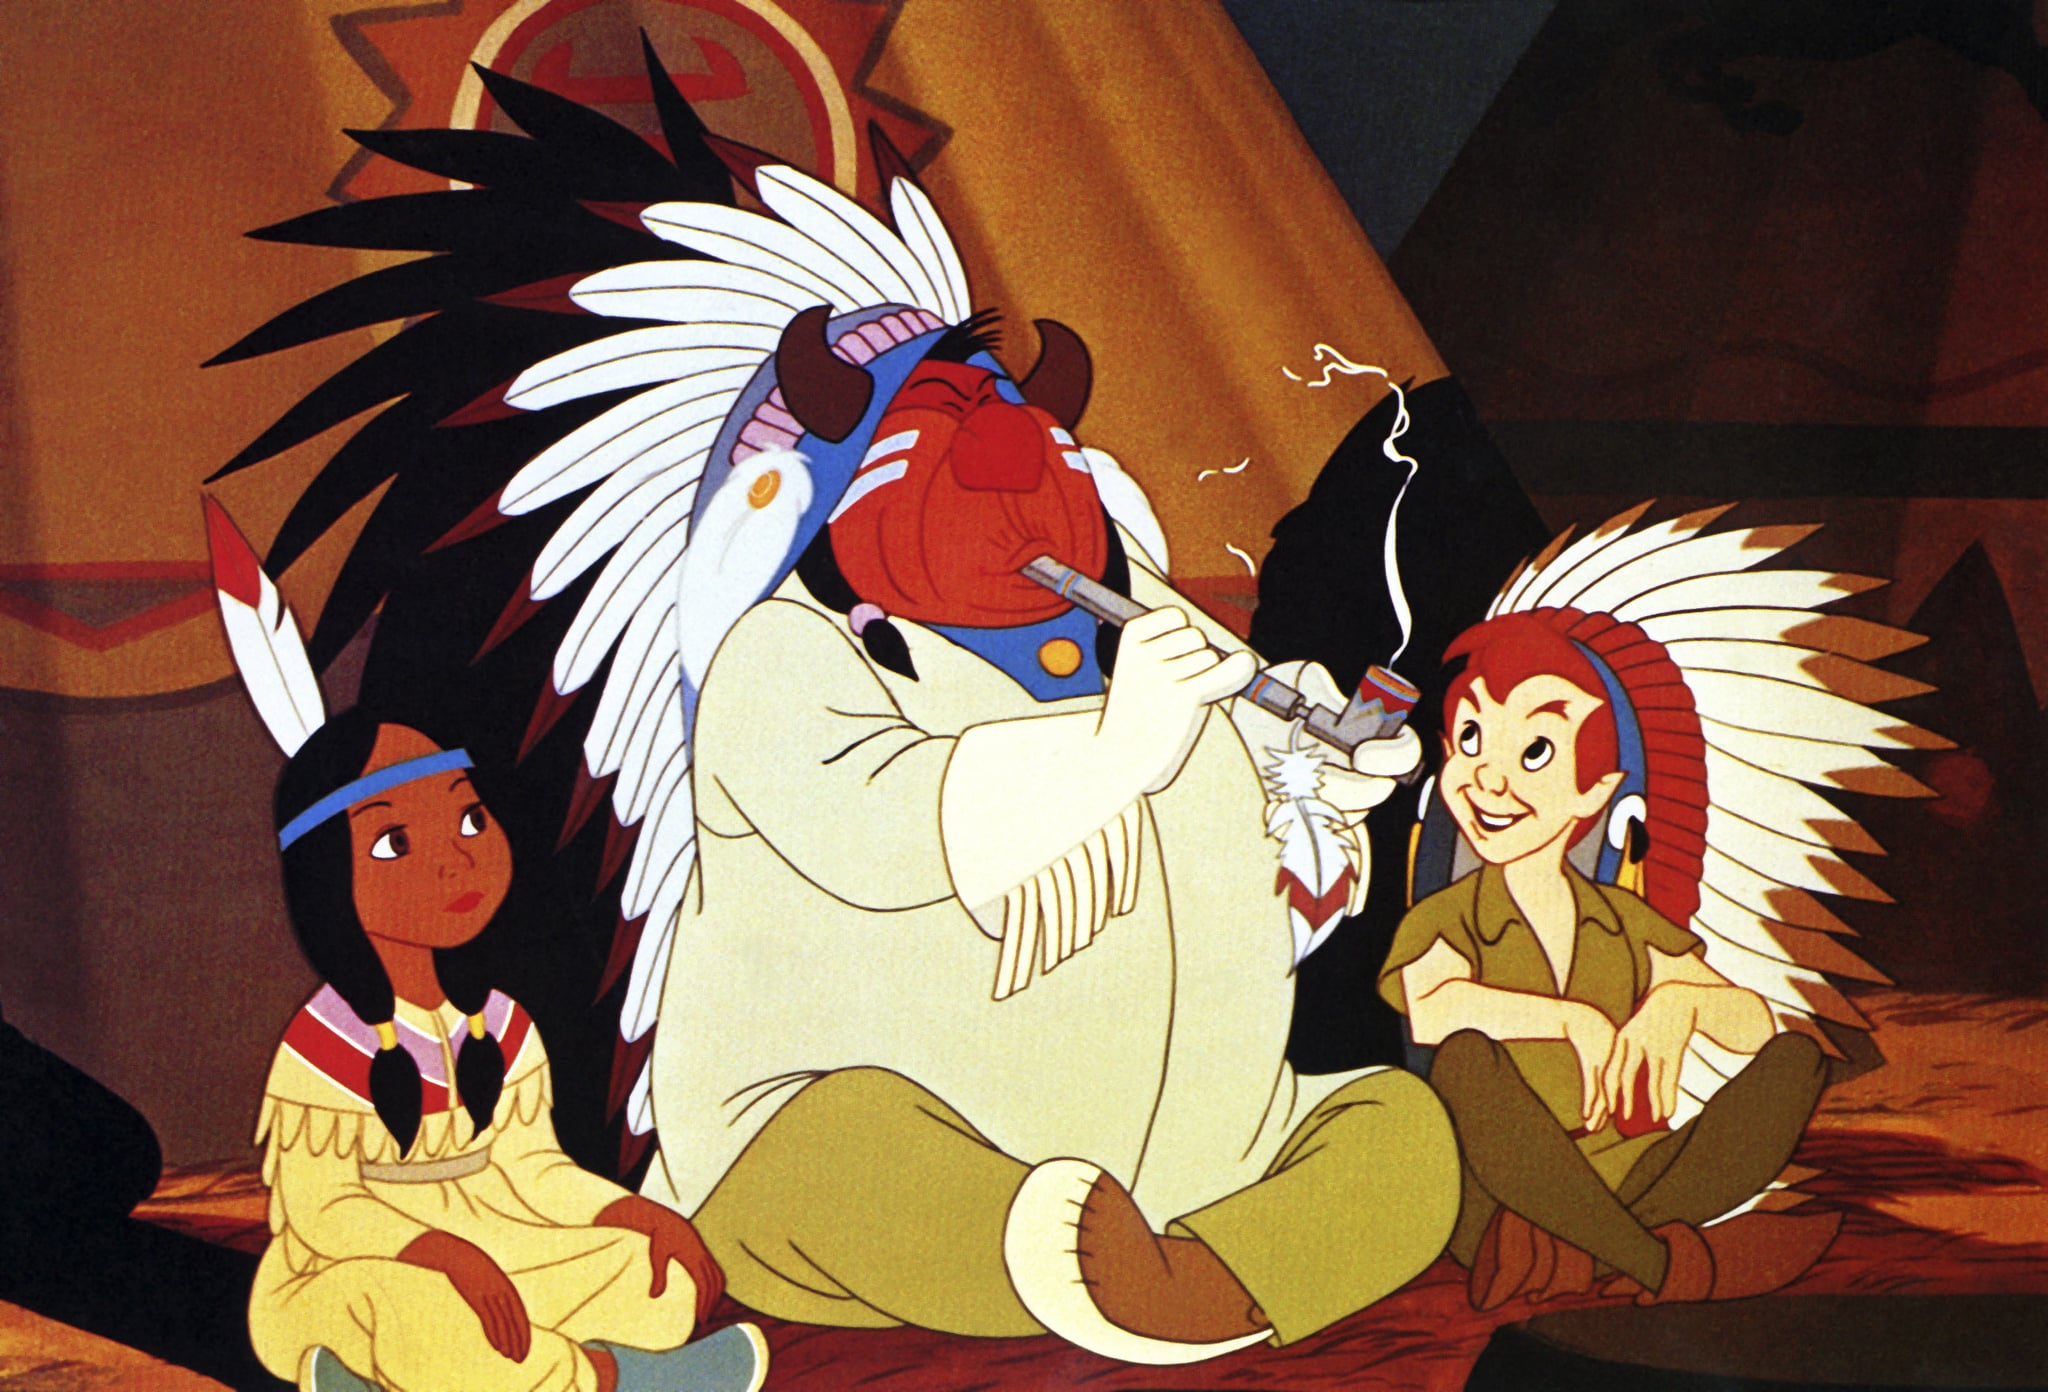 PETER PAN, from left: Princess Tiger Lily, indian chief, Peter Pan, 1953, Walt Disney Pictures/courtesy Everett Collection